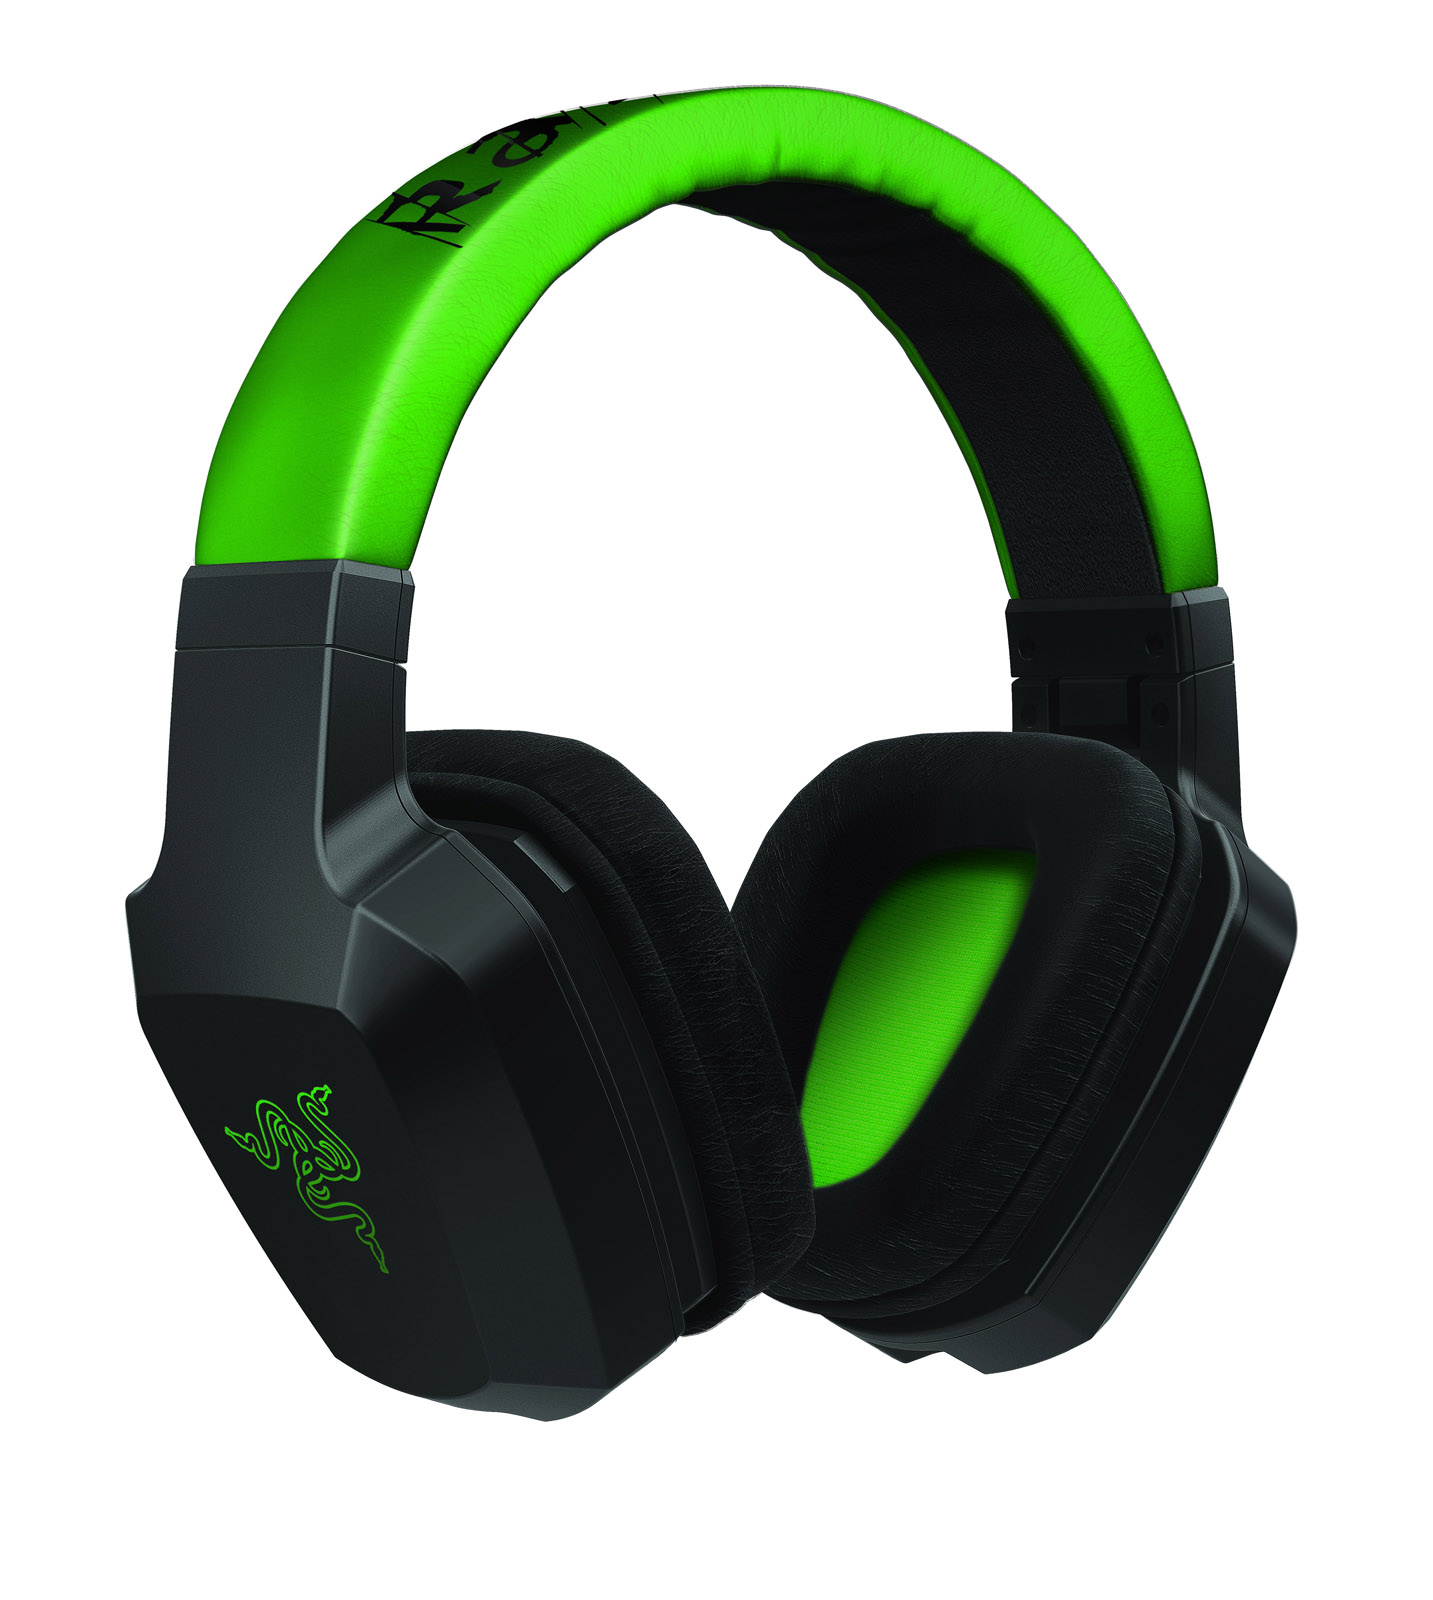 Razer reveals Electra headphones